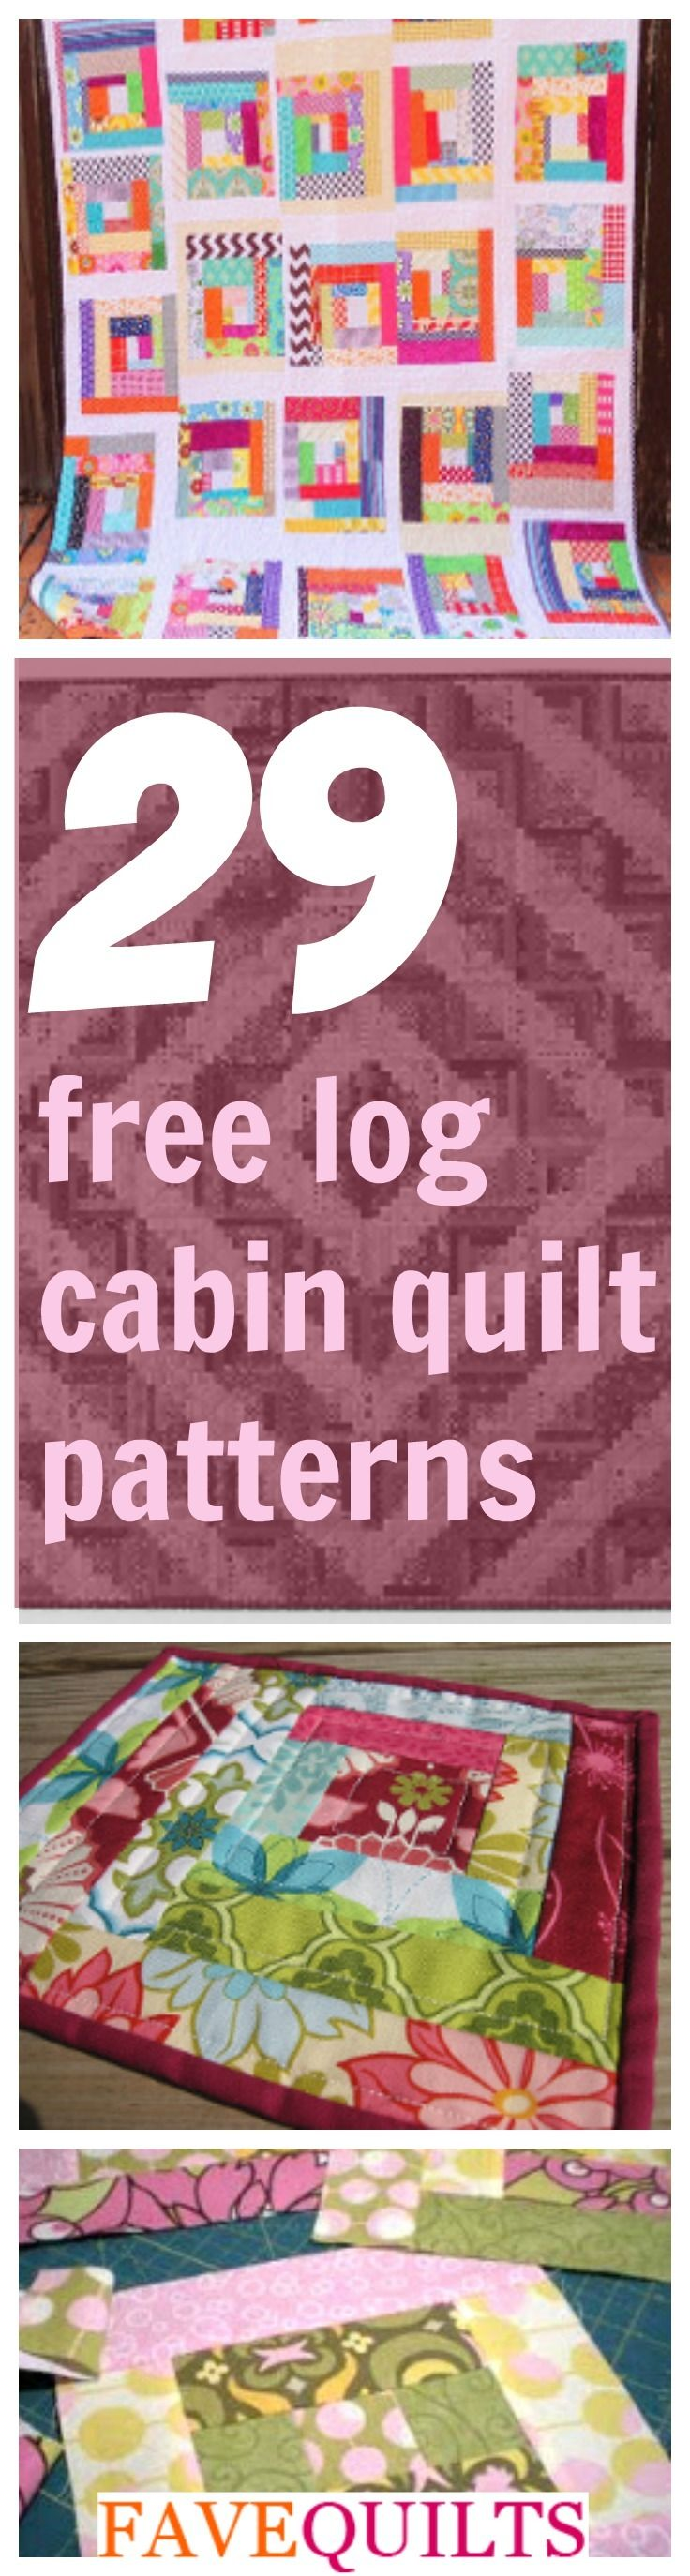 29 Free Log Cabin Quilt Patterns | FaveQuilts.com